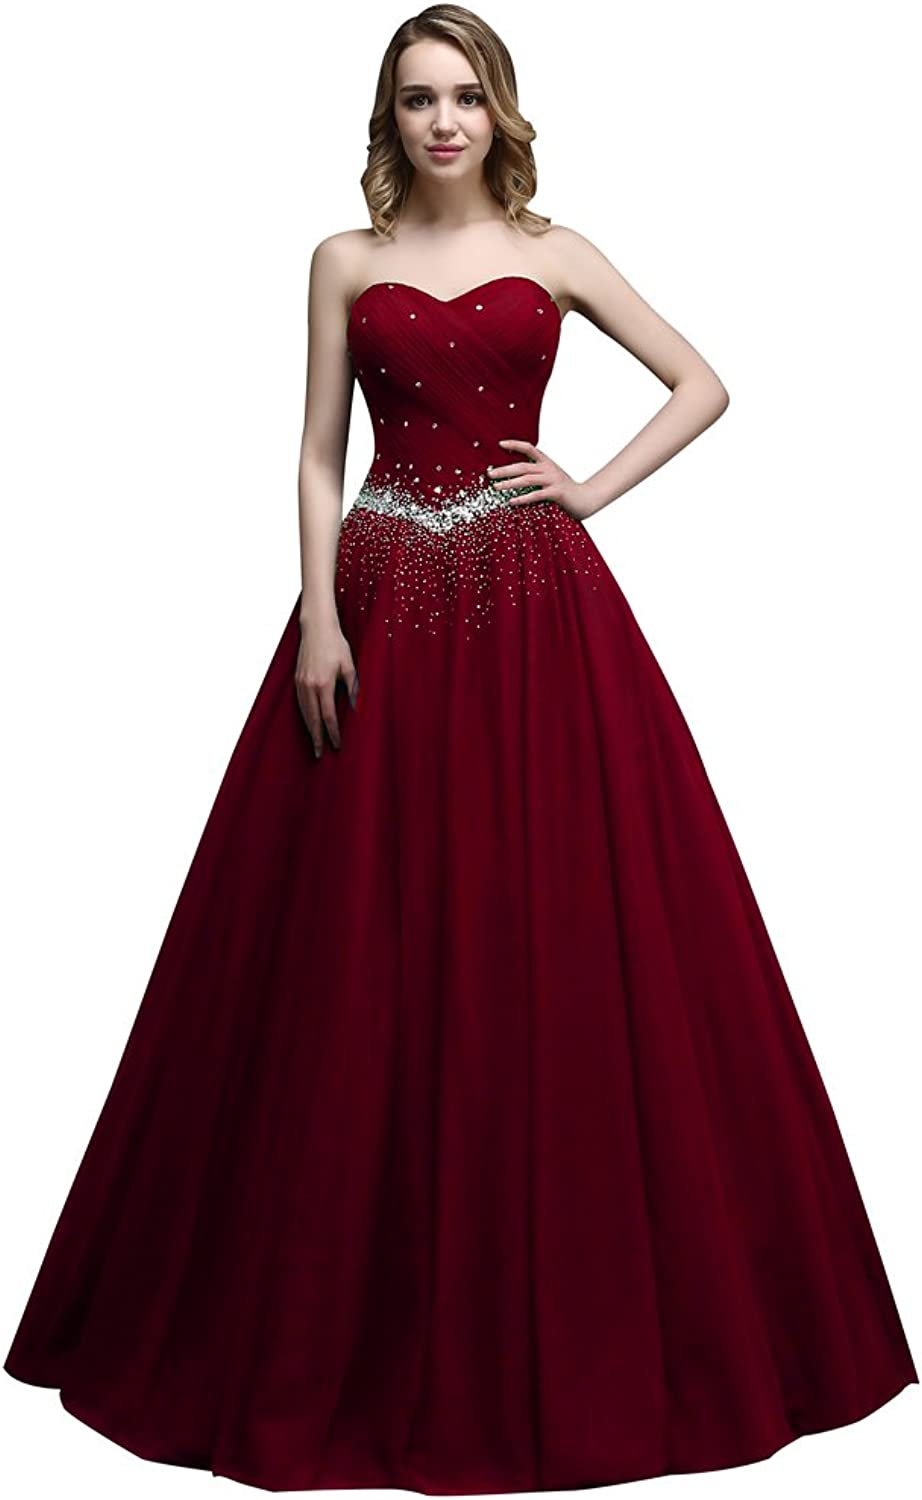 Nymph Women's Sweetheart Beading Tulle Party Prom Dresses